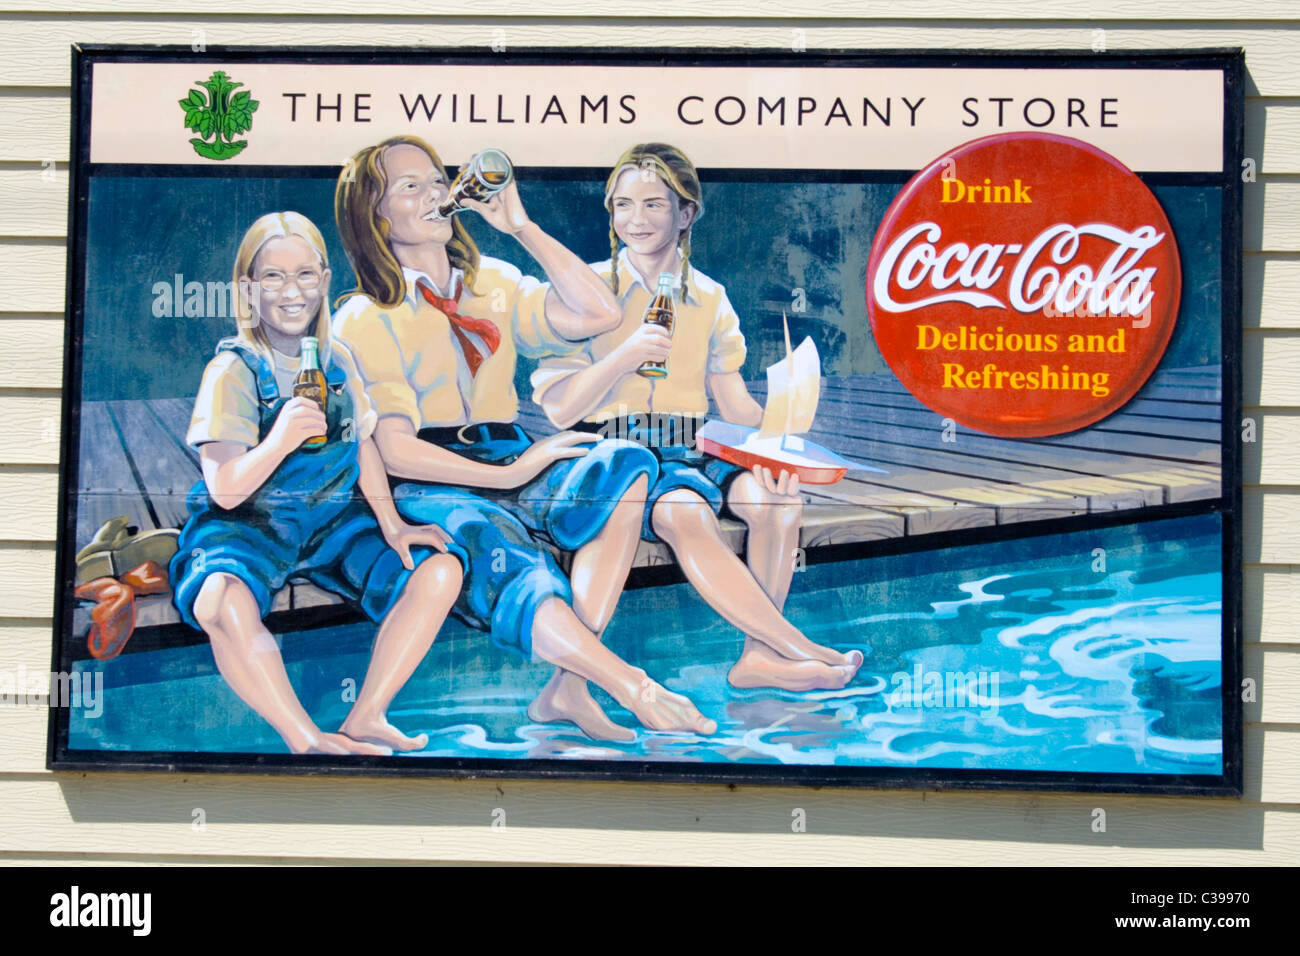 Old time sign on the Williams Company General Store advertising Coca-Cola. Otter Tail Minnesota MN USA - Stock Image